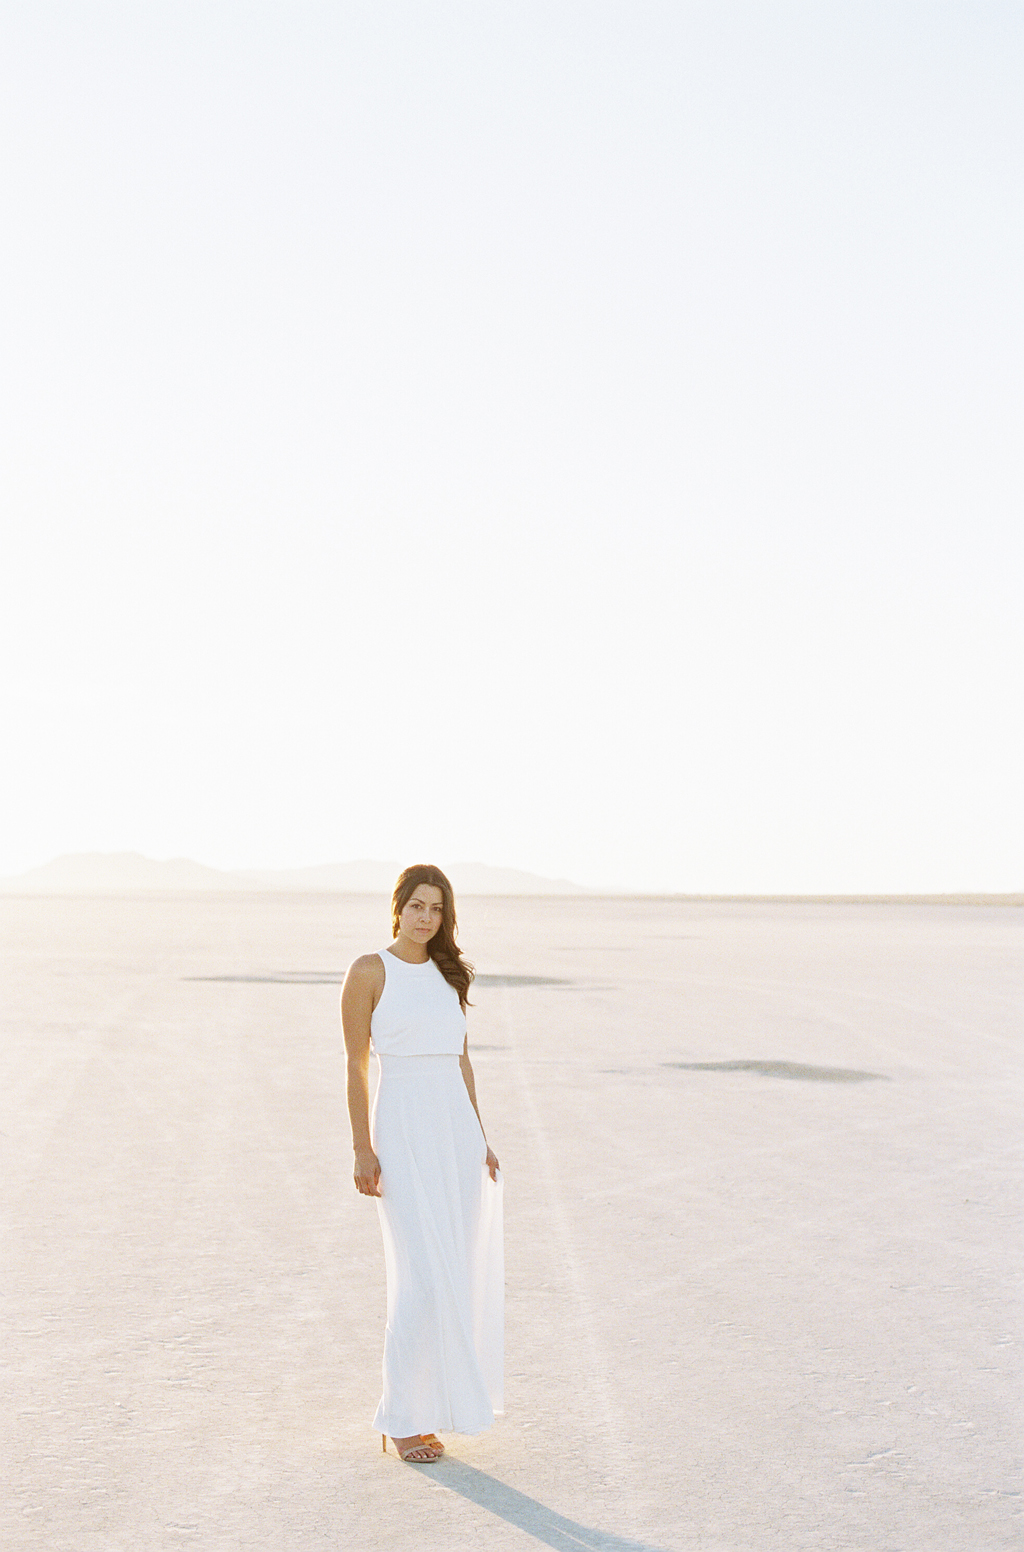 photographer, kristin kidd, poses for a film photograph in the california desert, shot on fuji 400h.